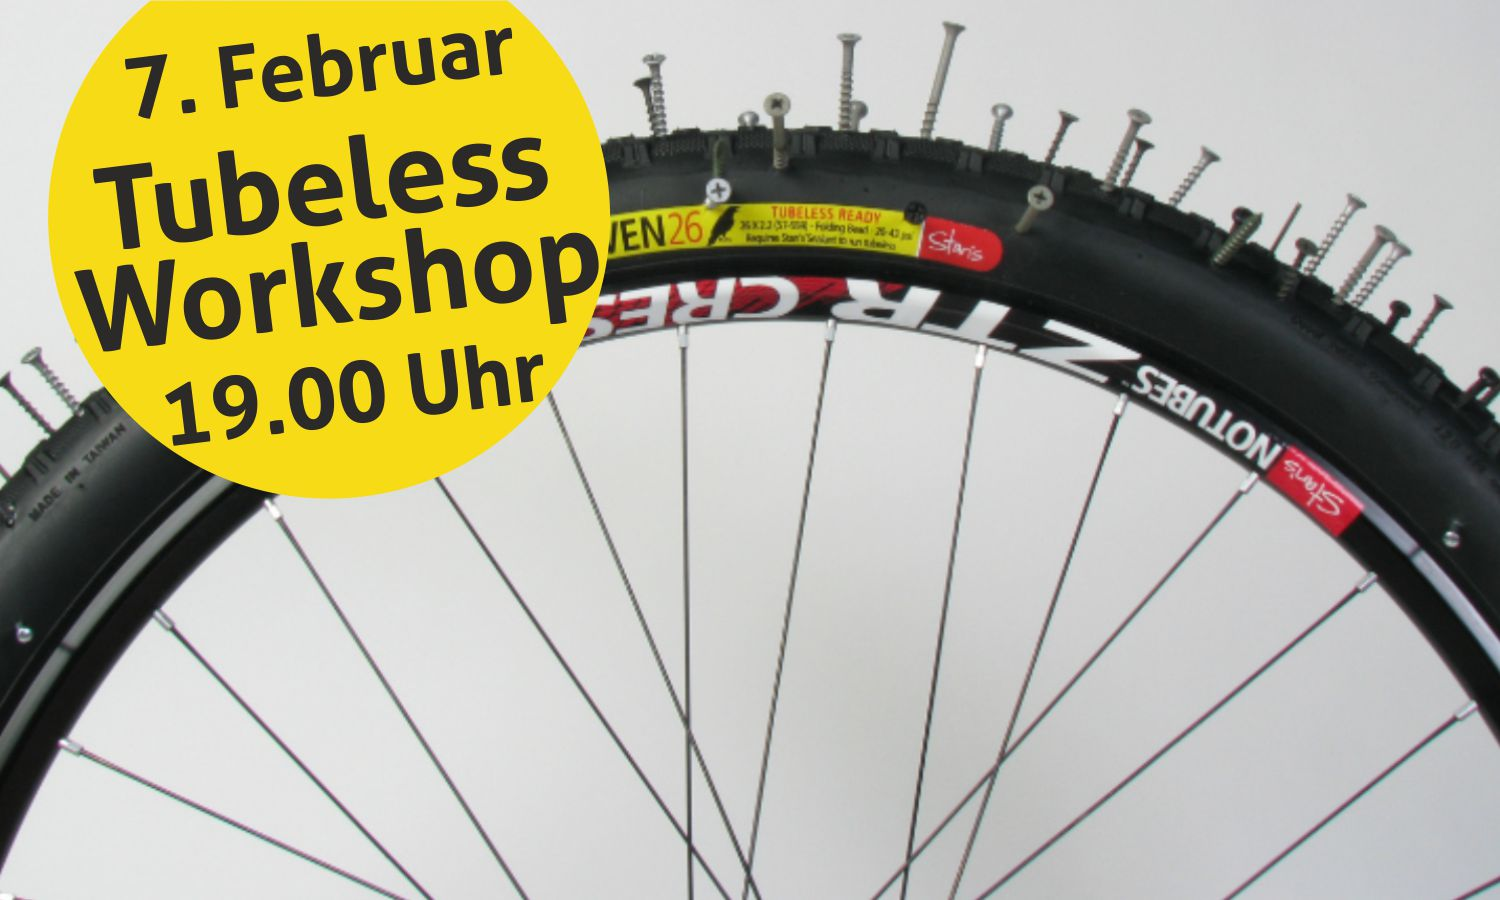 Tubeless-Workshop am 7. Februar